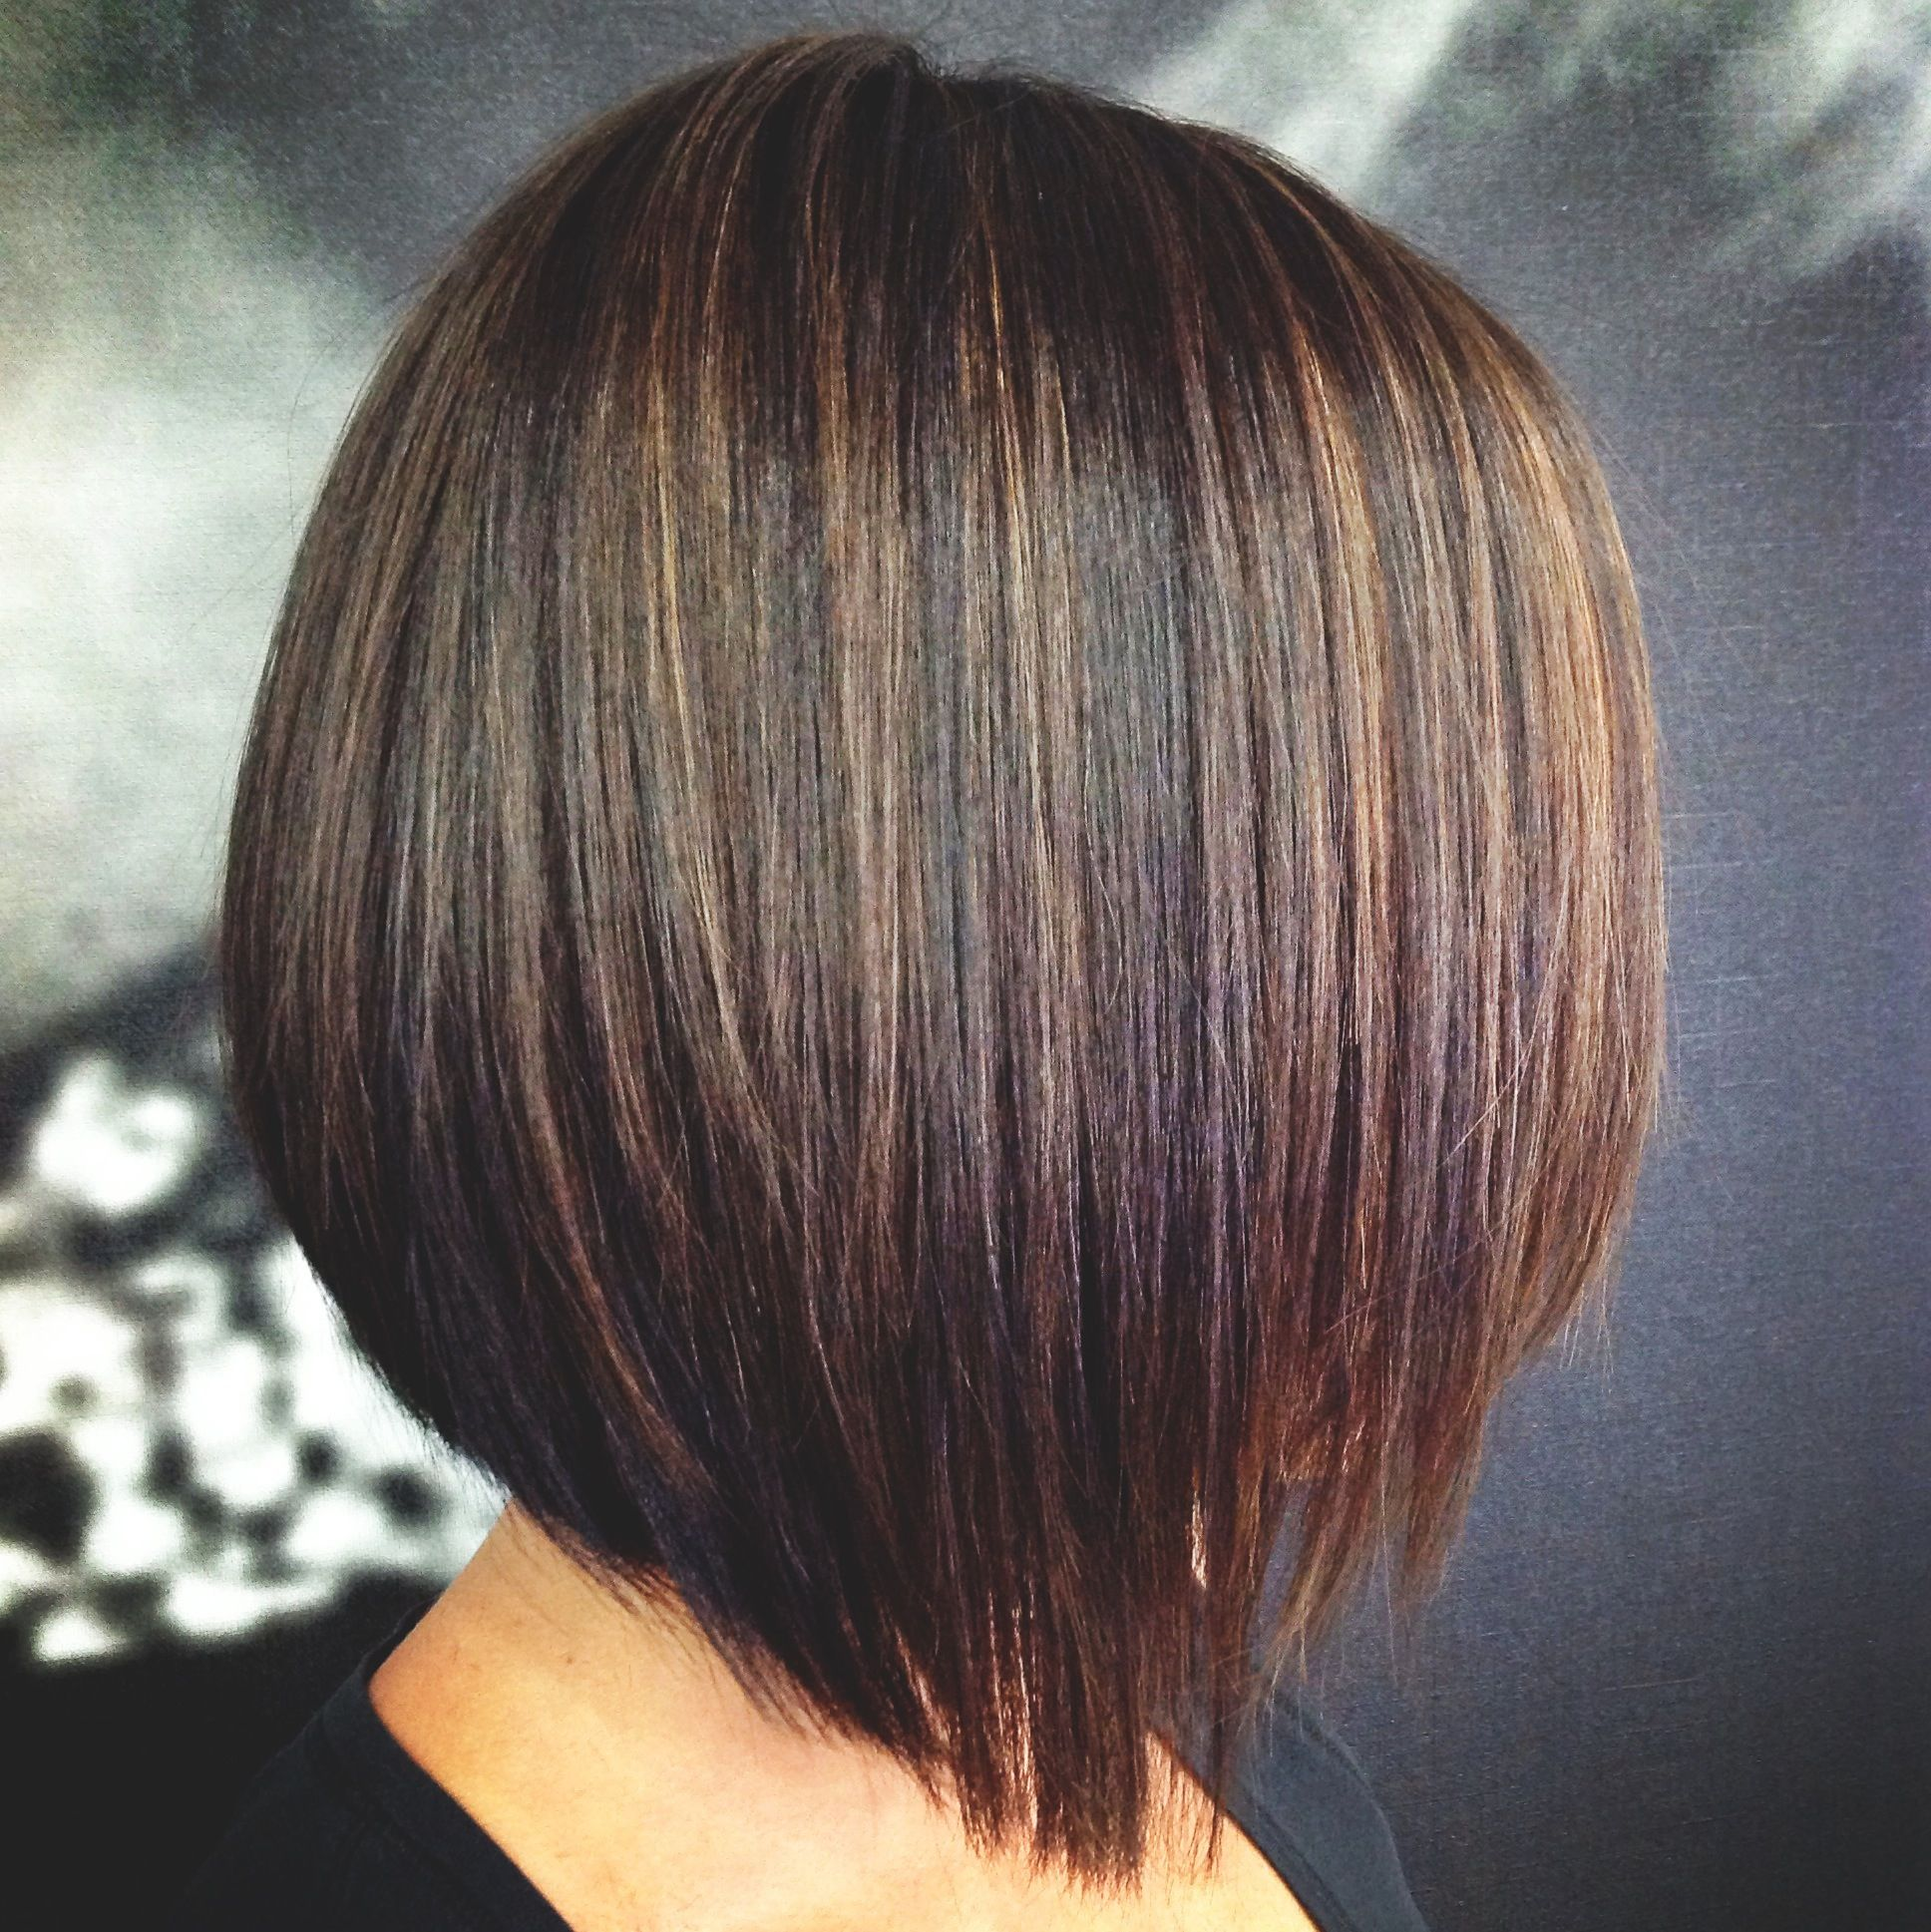 20 Short Hairstyles For Girls With Or Without Curls 1